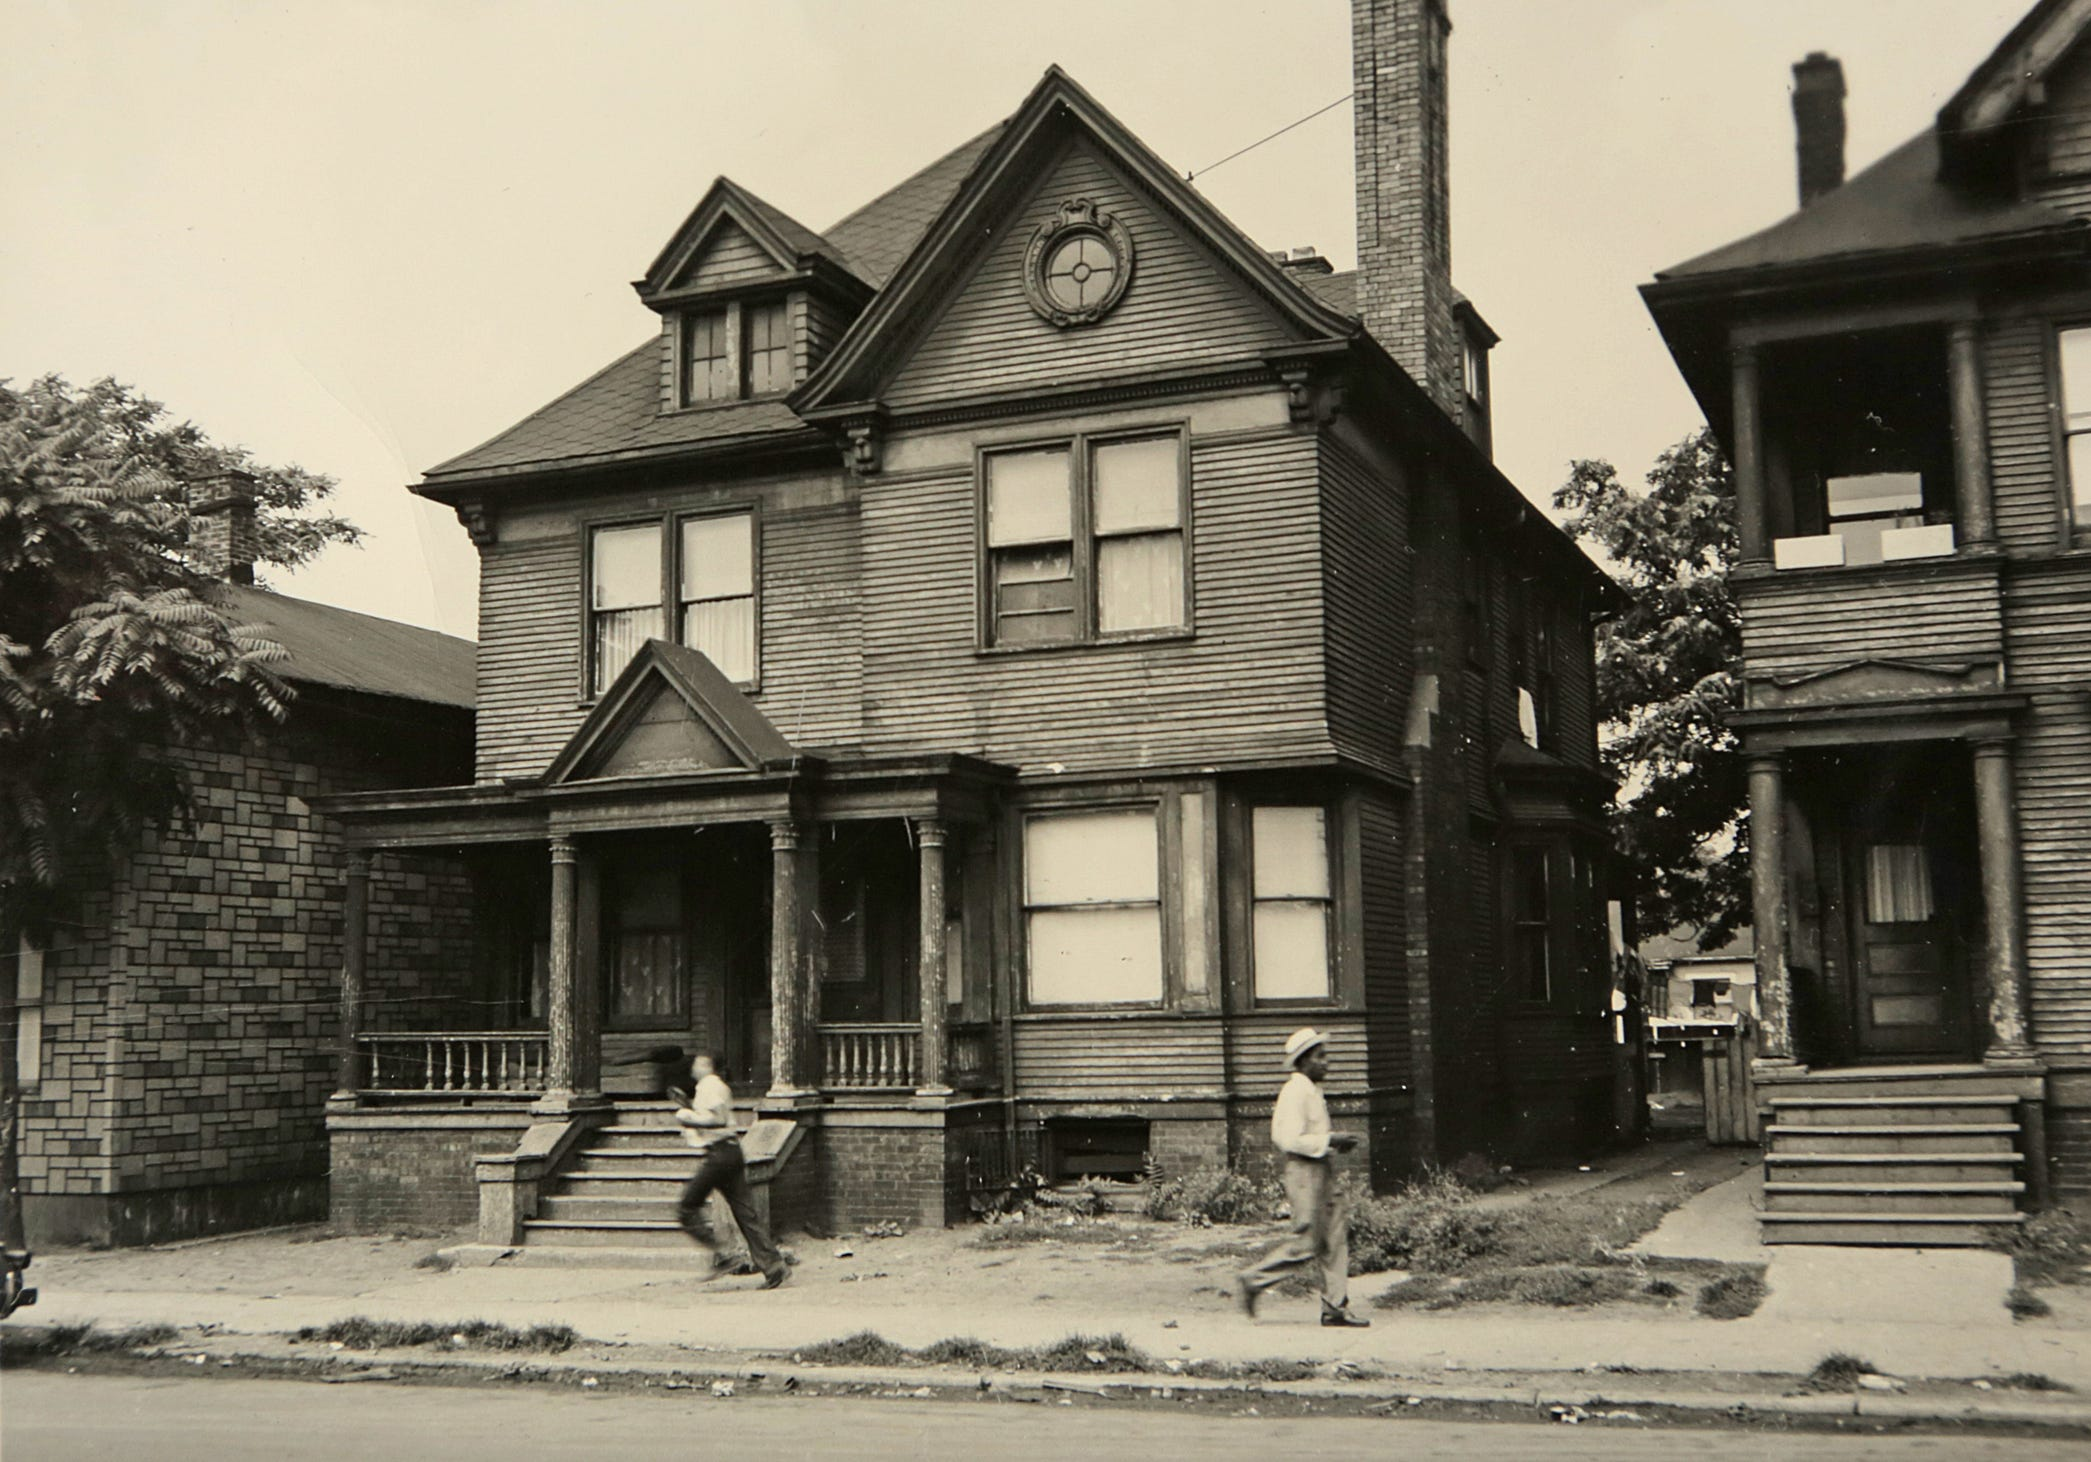 This is a historical photo of Black Bottom before it was torn down in the 1950s to make way for the Chrysler Freeway and the Detroit Medical Center. In this photo two men pass 1535 Monroe St. on August 31, 1949 in Black Bottom, the ancestral neighborhood of many metro Detroit African Americans. Courtesy of the Burton Historical Collection